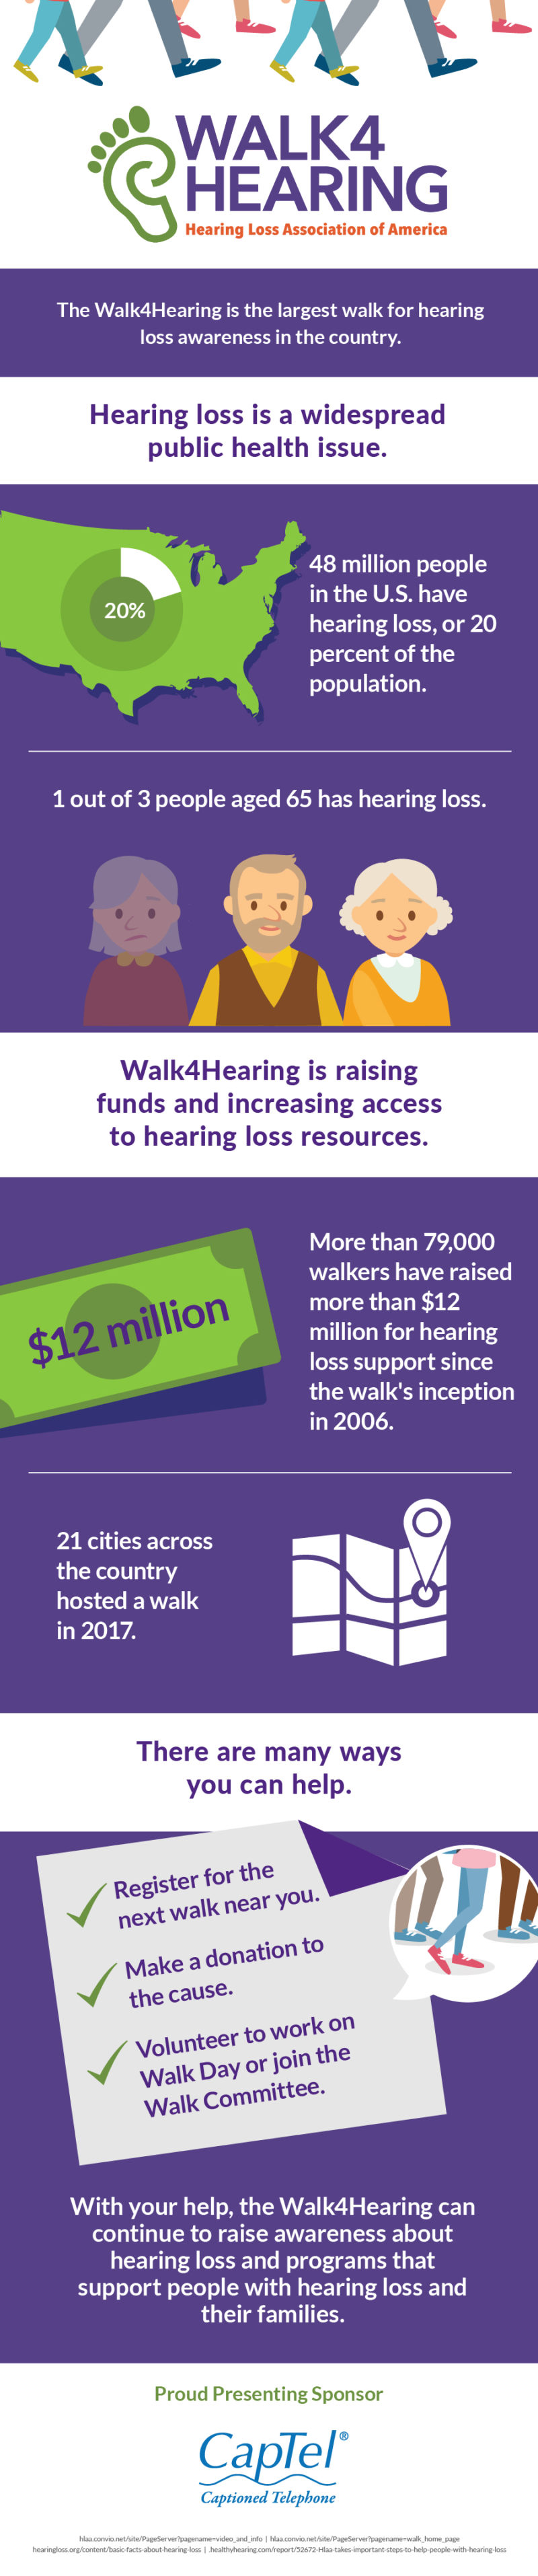 Get ready, walk! All about the Hearing Loss Association of America Walk4Hearing.